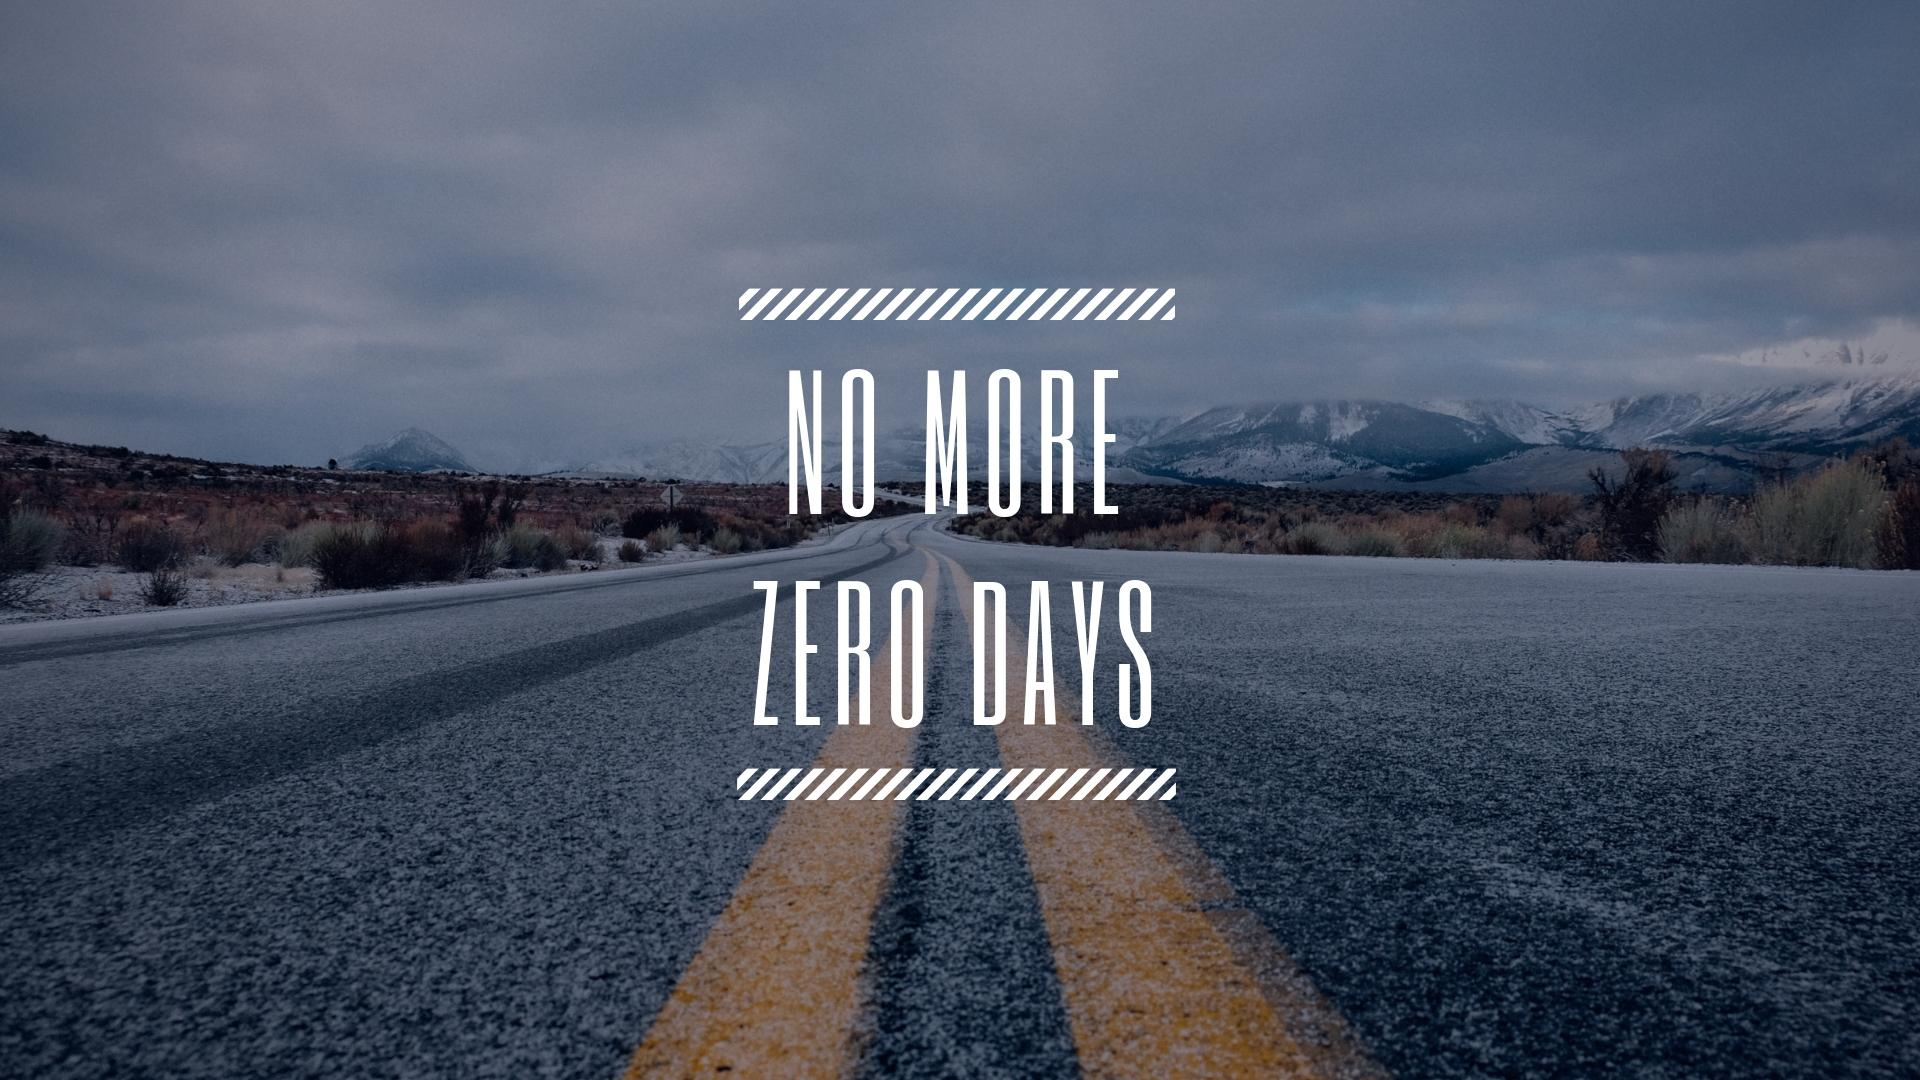 [Image] No More Zero Days